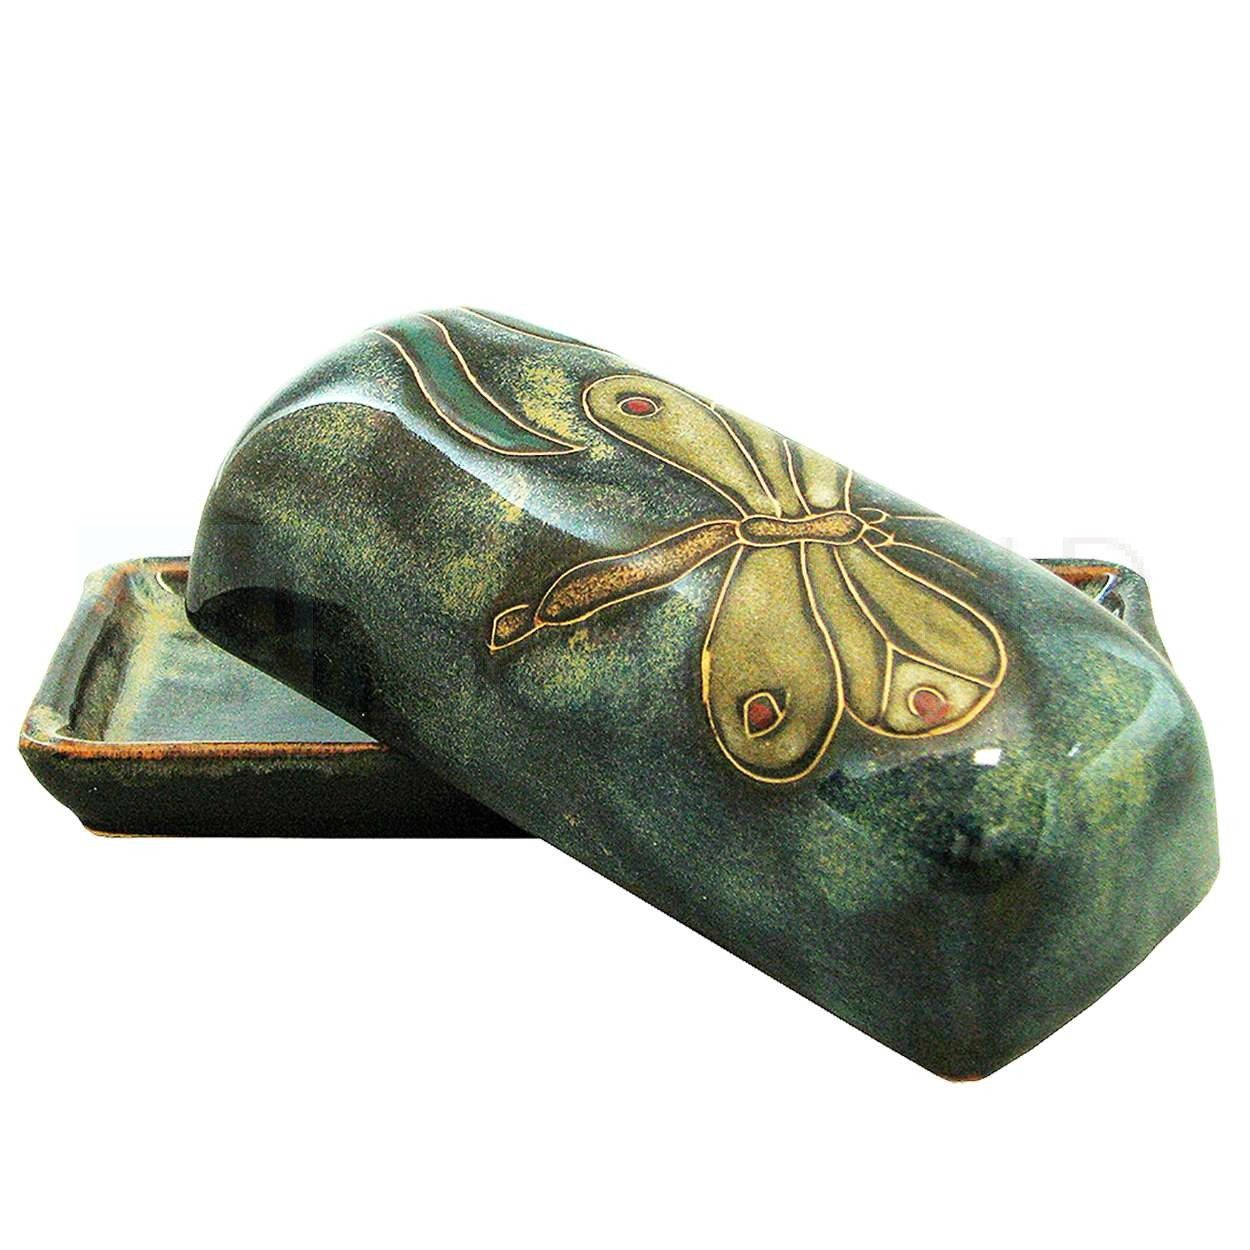 Mara Ceramic Stoneware Dragonfly Butter Dish with Lid- 565DF